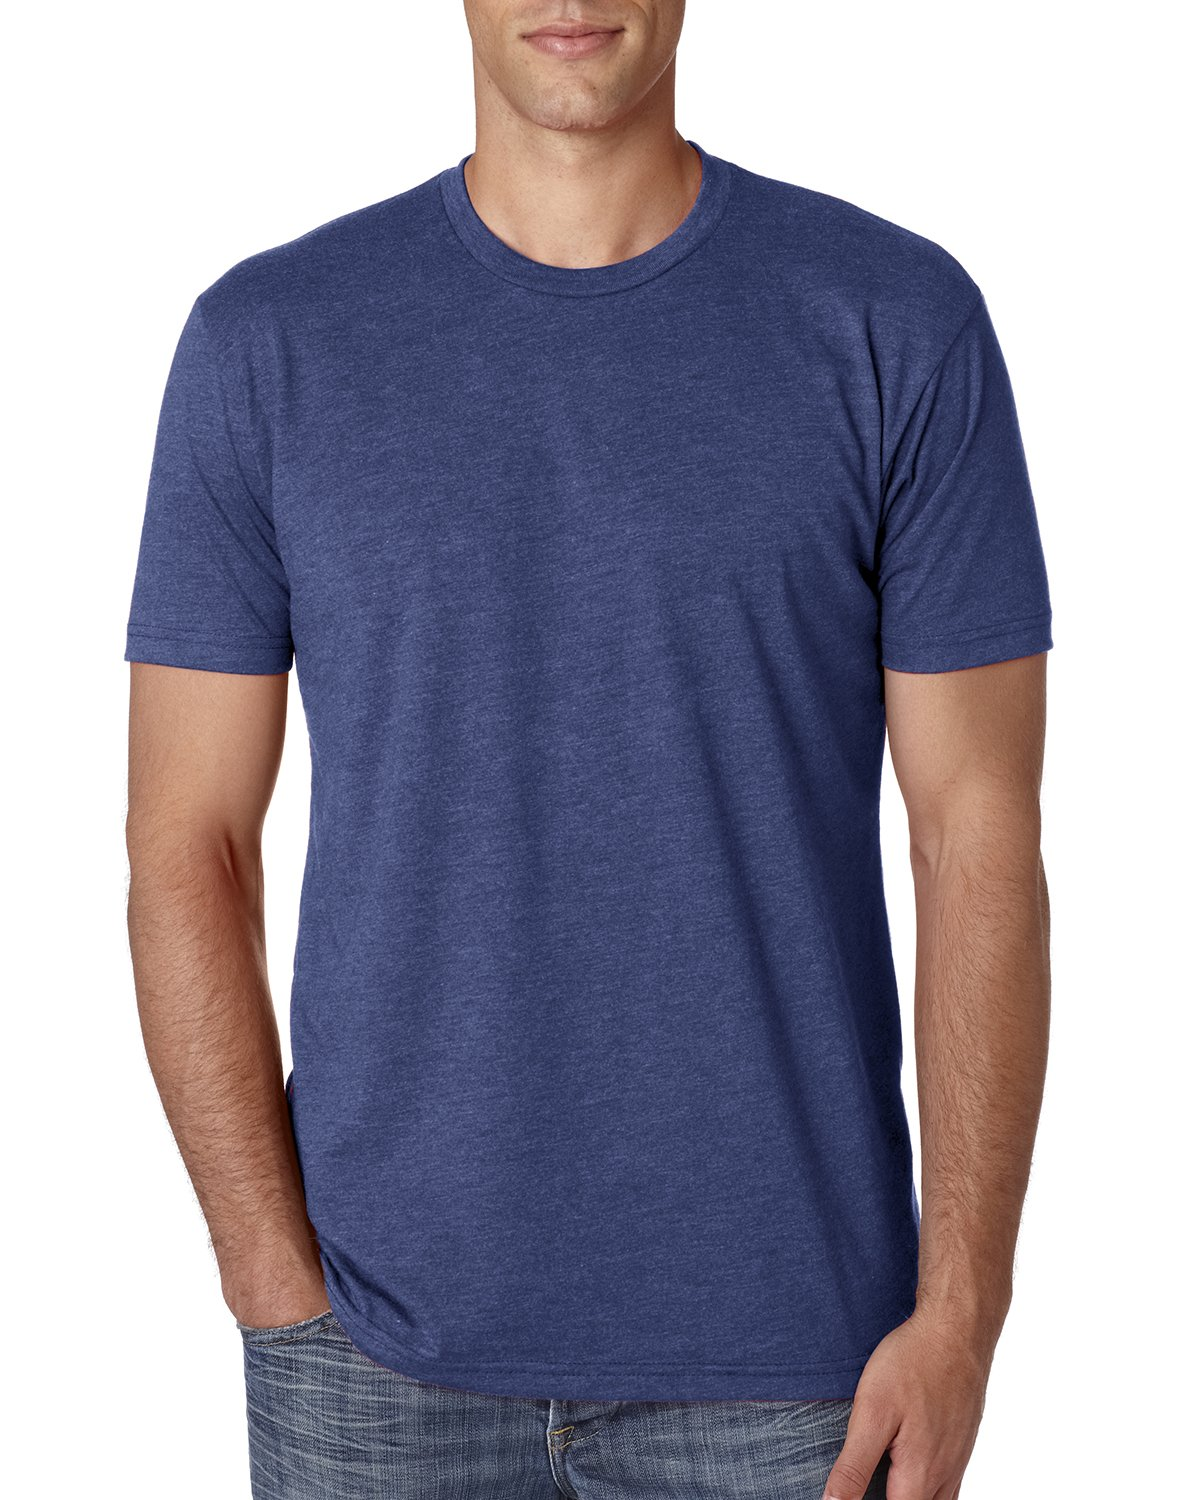 Next Level Mens T-Shirt N6210